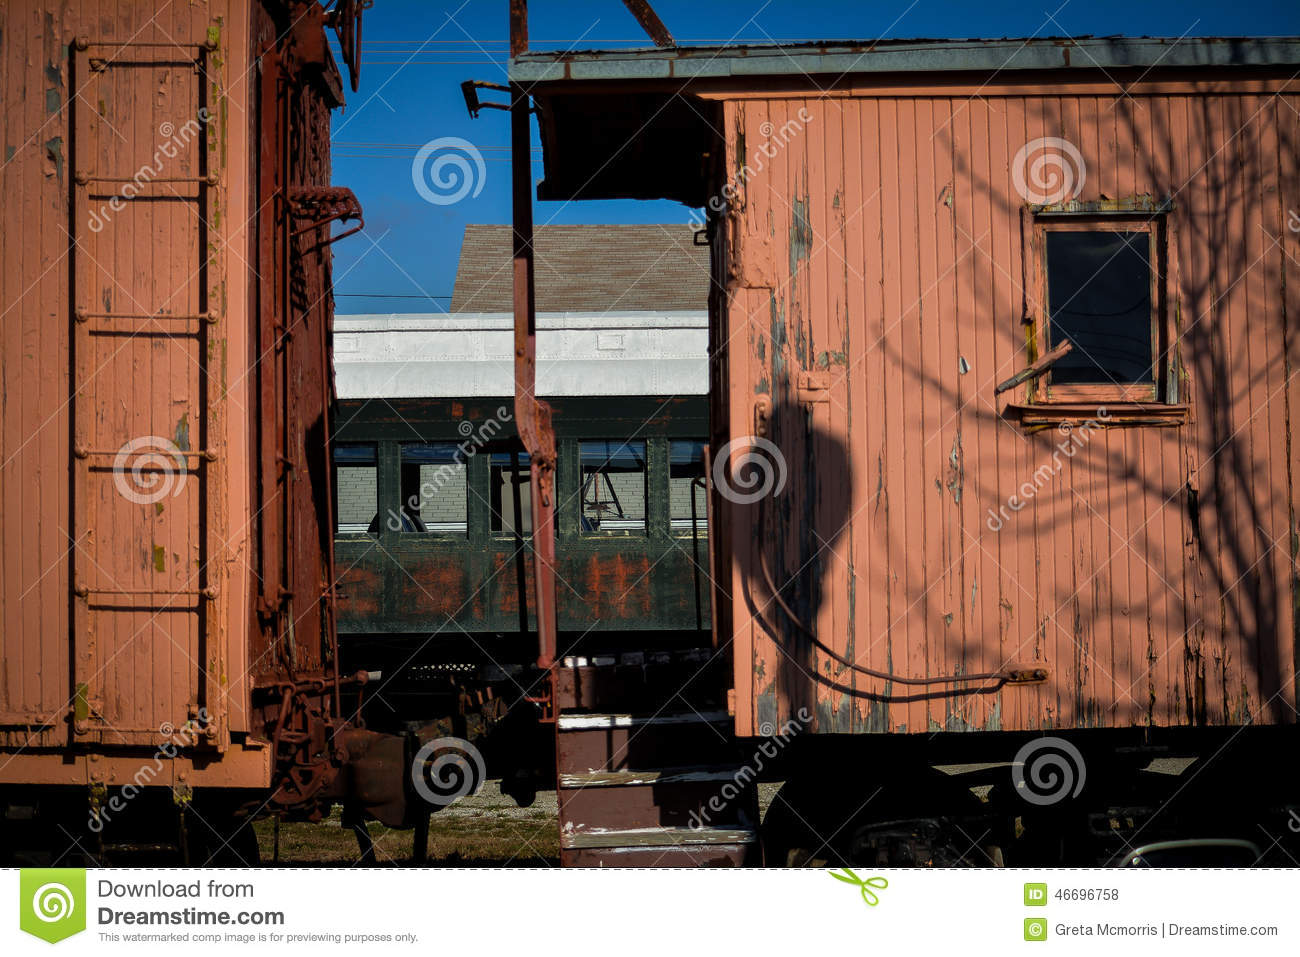 Boxcar τραίνων Weahtered